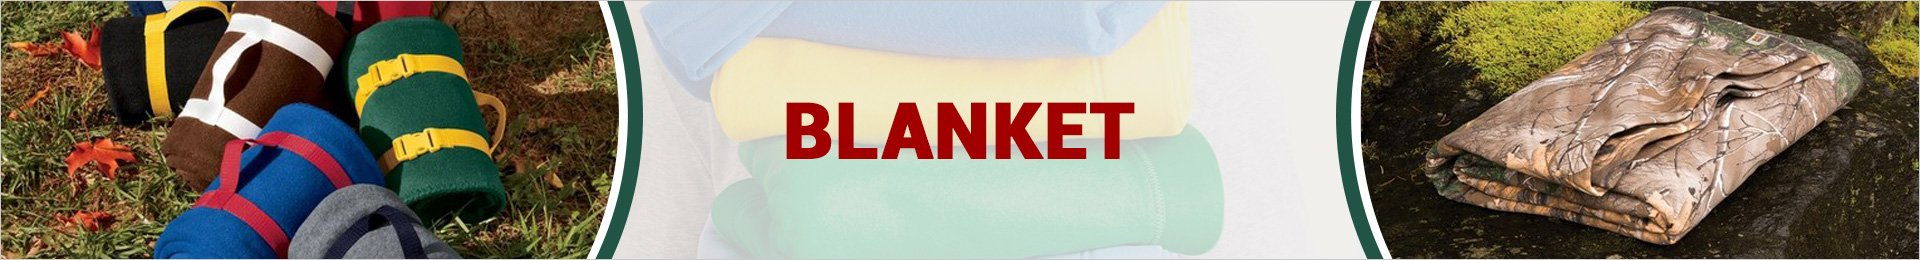 Wholesale Blanket